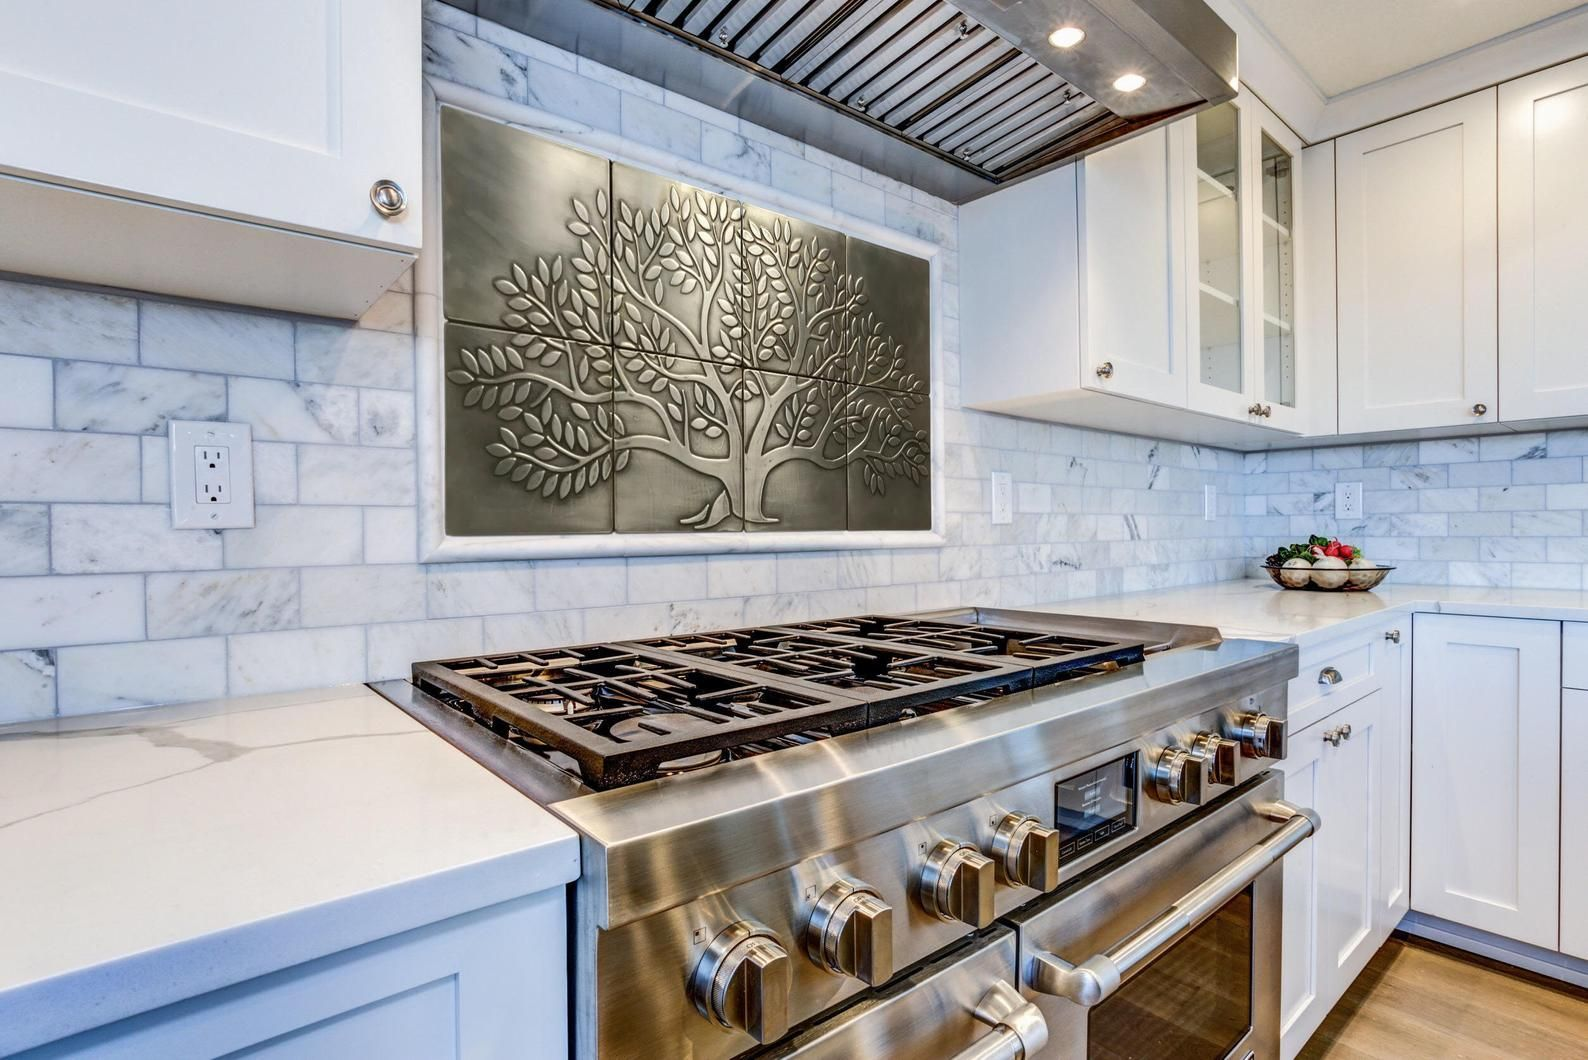 Tree Of Life 8 Handmade 100 Stainless Steel Tiles Perfect For Kitchen Backsplash In 2020 Stainless Steel Tile Stainless Steel Tile Backsplash Kitchen